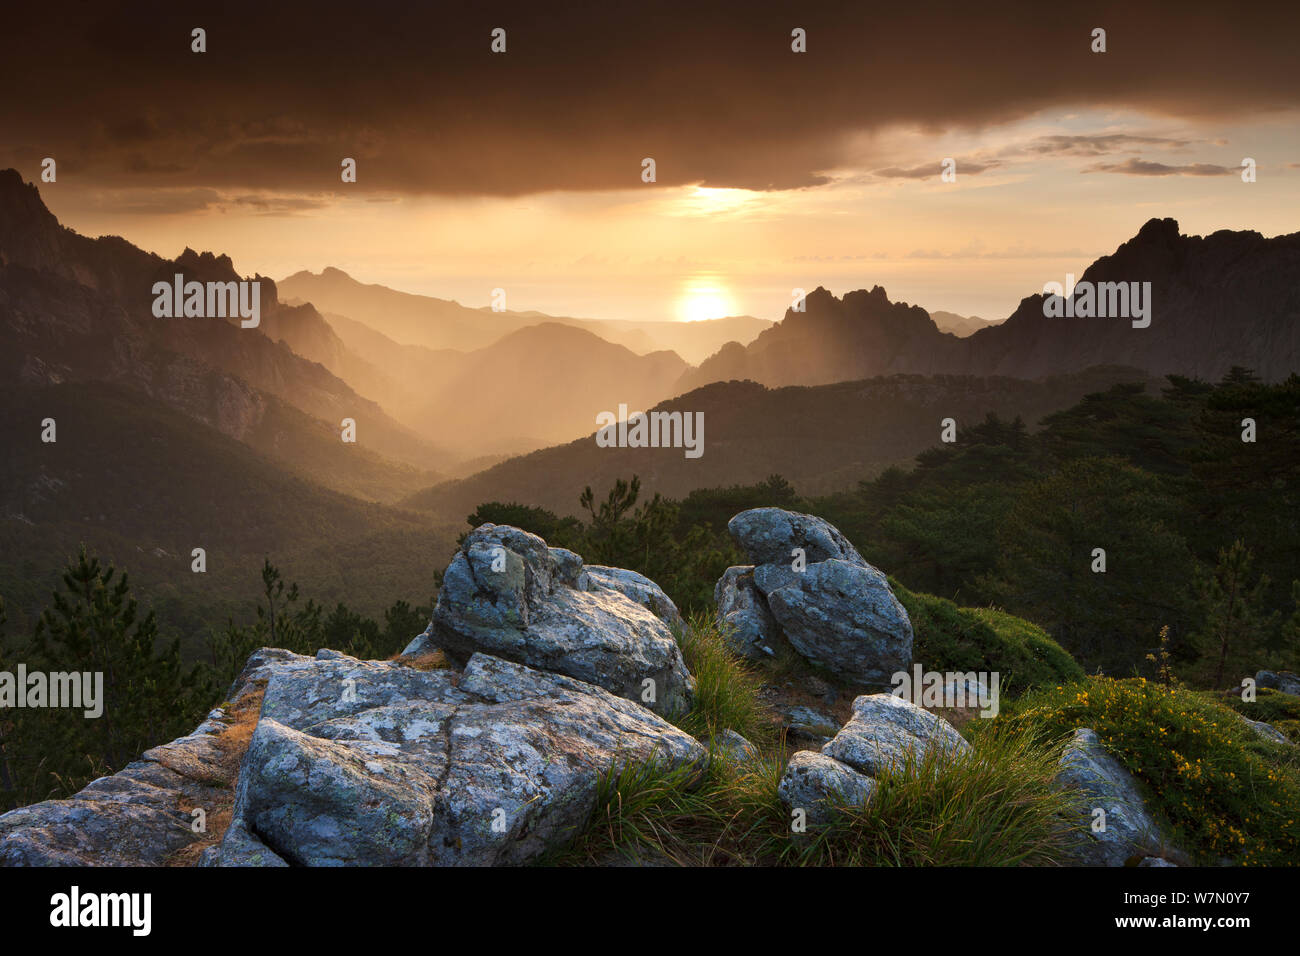 The Col de Bavella at dawn, Corsica, France. June 2011. Stock Photo